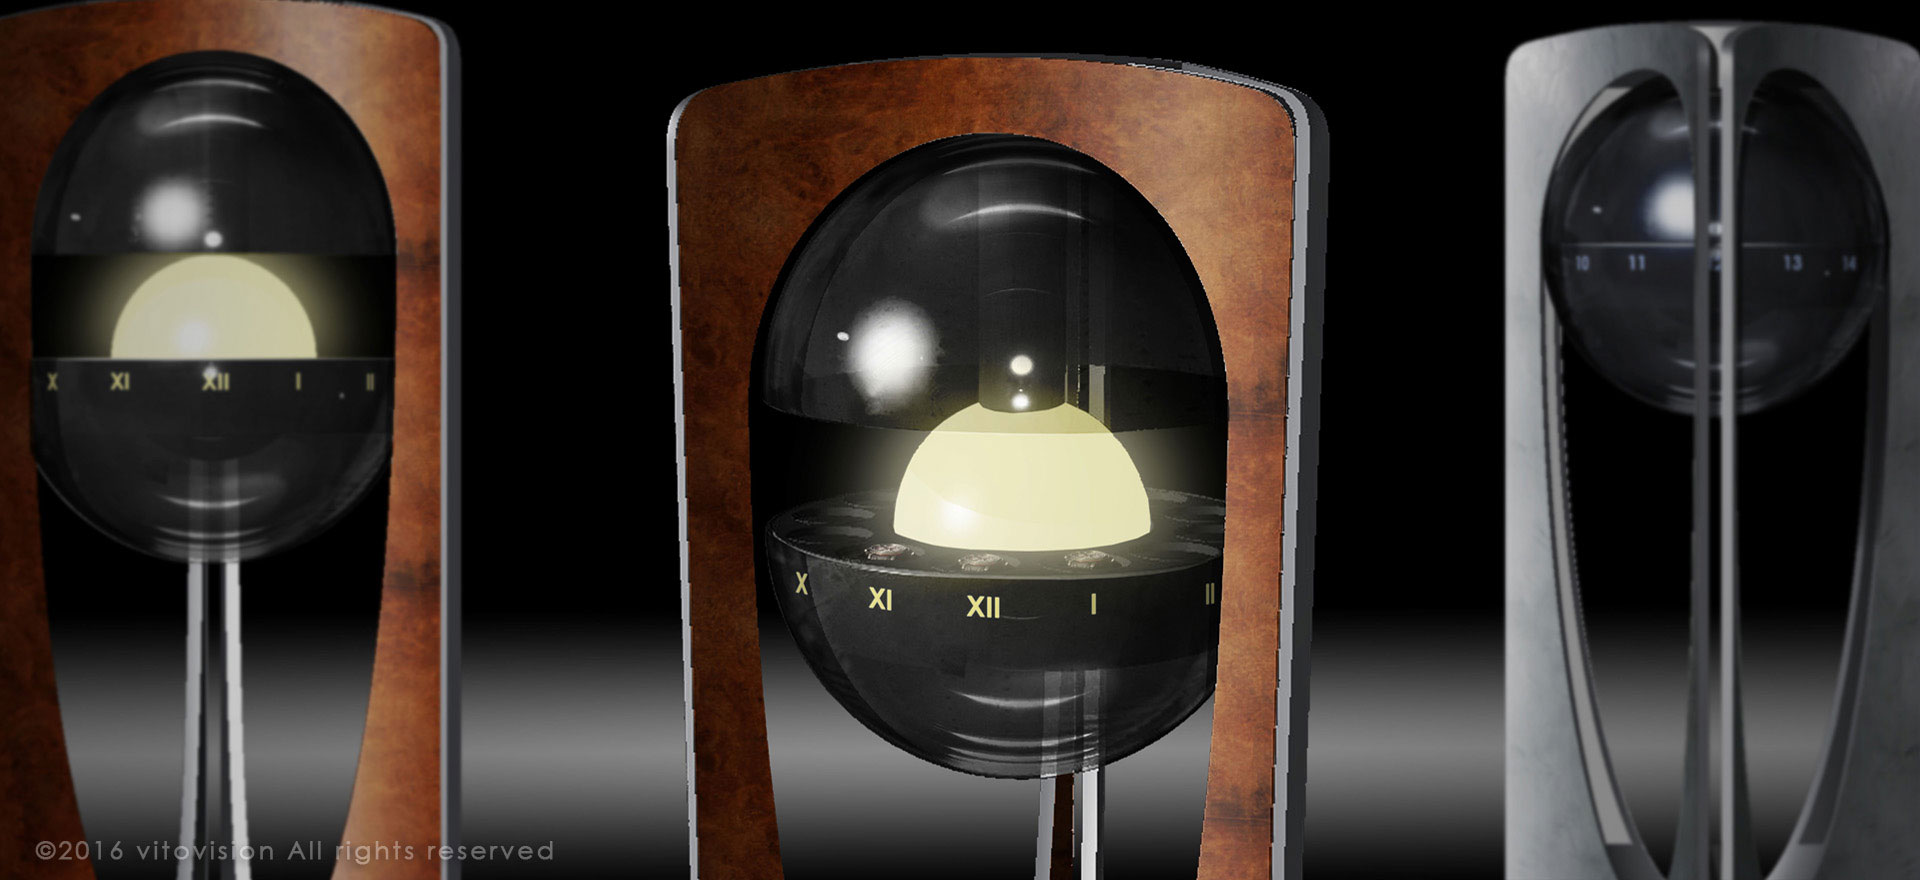 Watchwinder design concept from vitovision